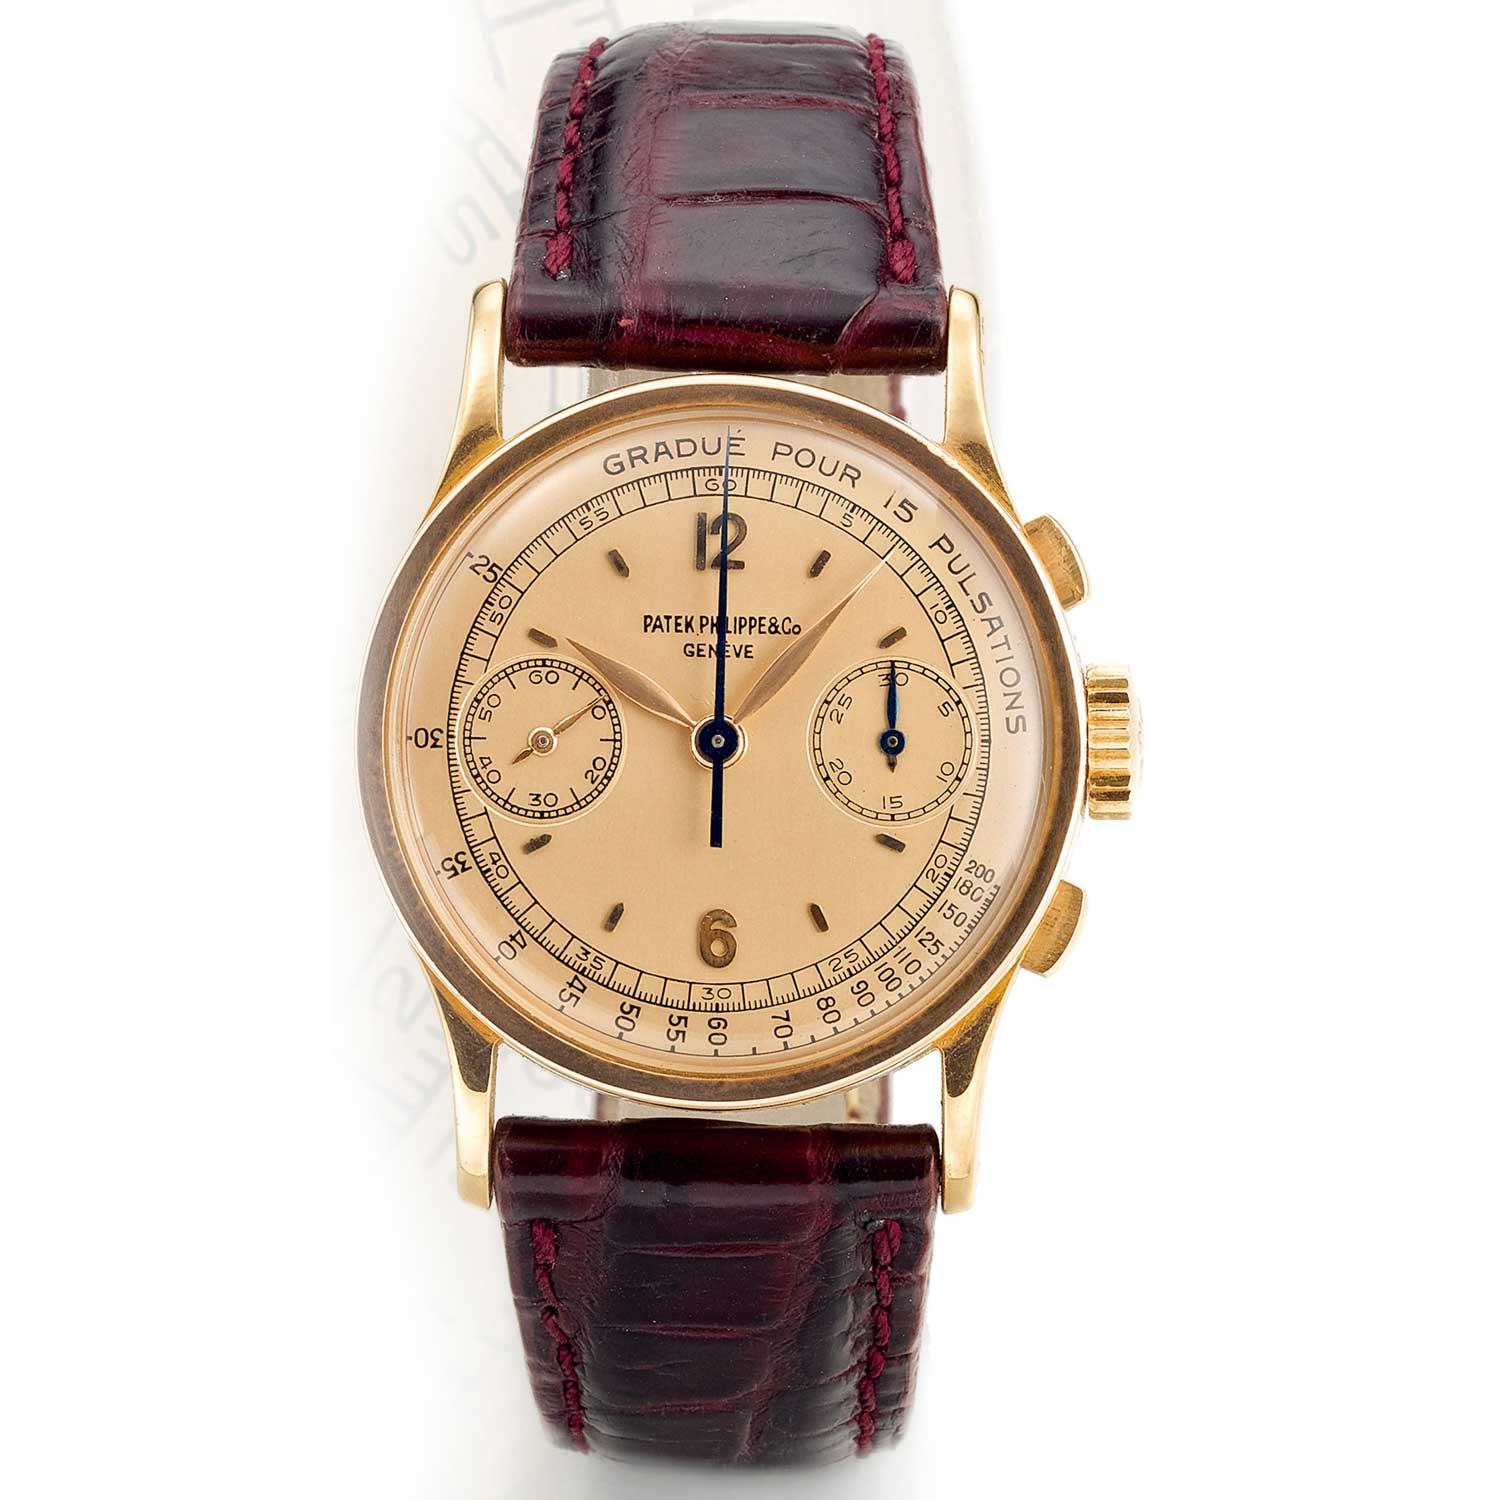 1947 Patek Philippe ref. 533 pink gold chronograph with satin finished pink dial, Arabic numerals and pulsation scale (Image: Sothebys.com)